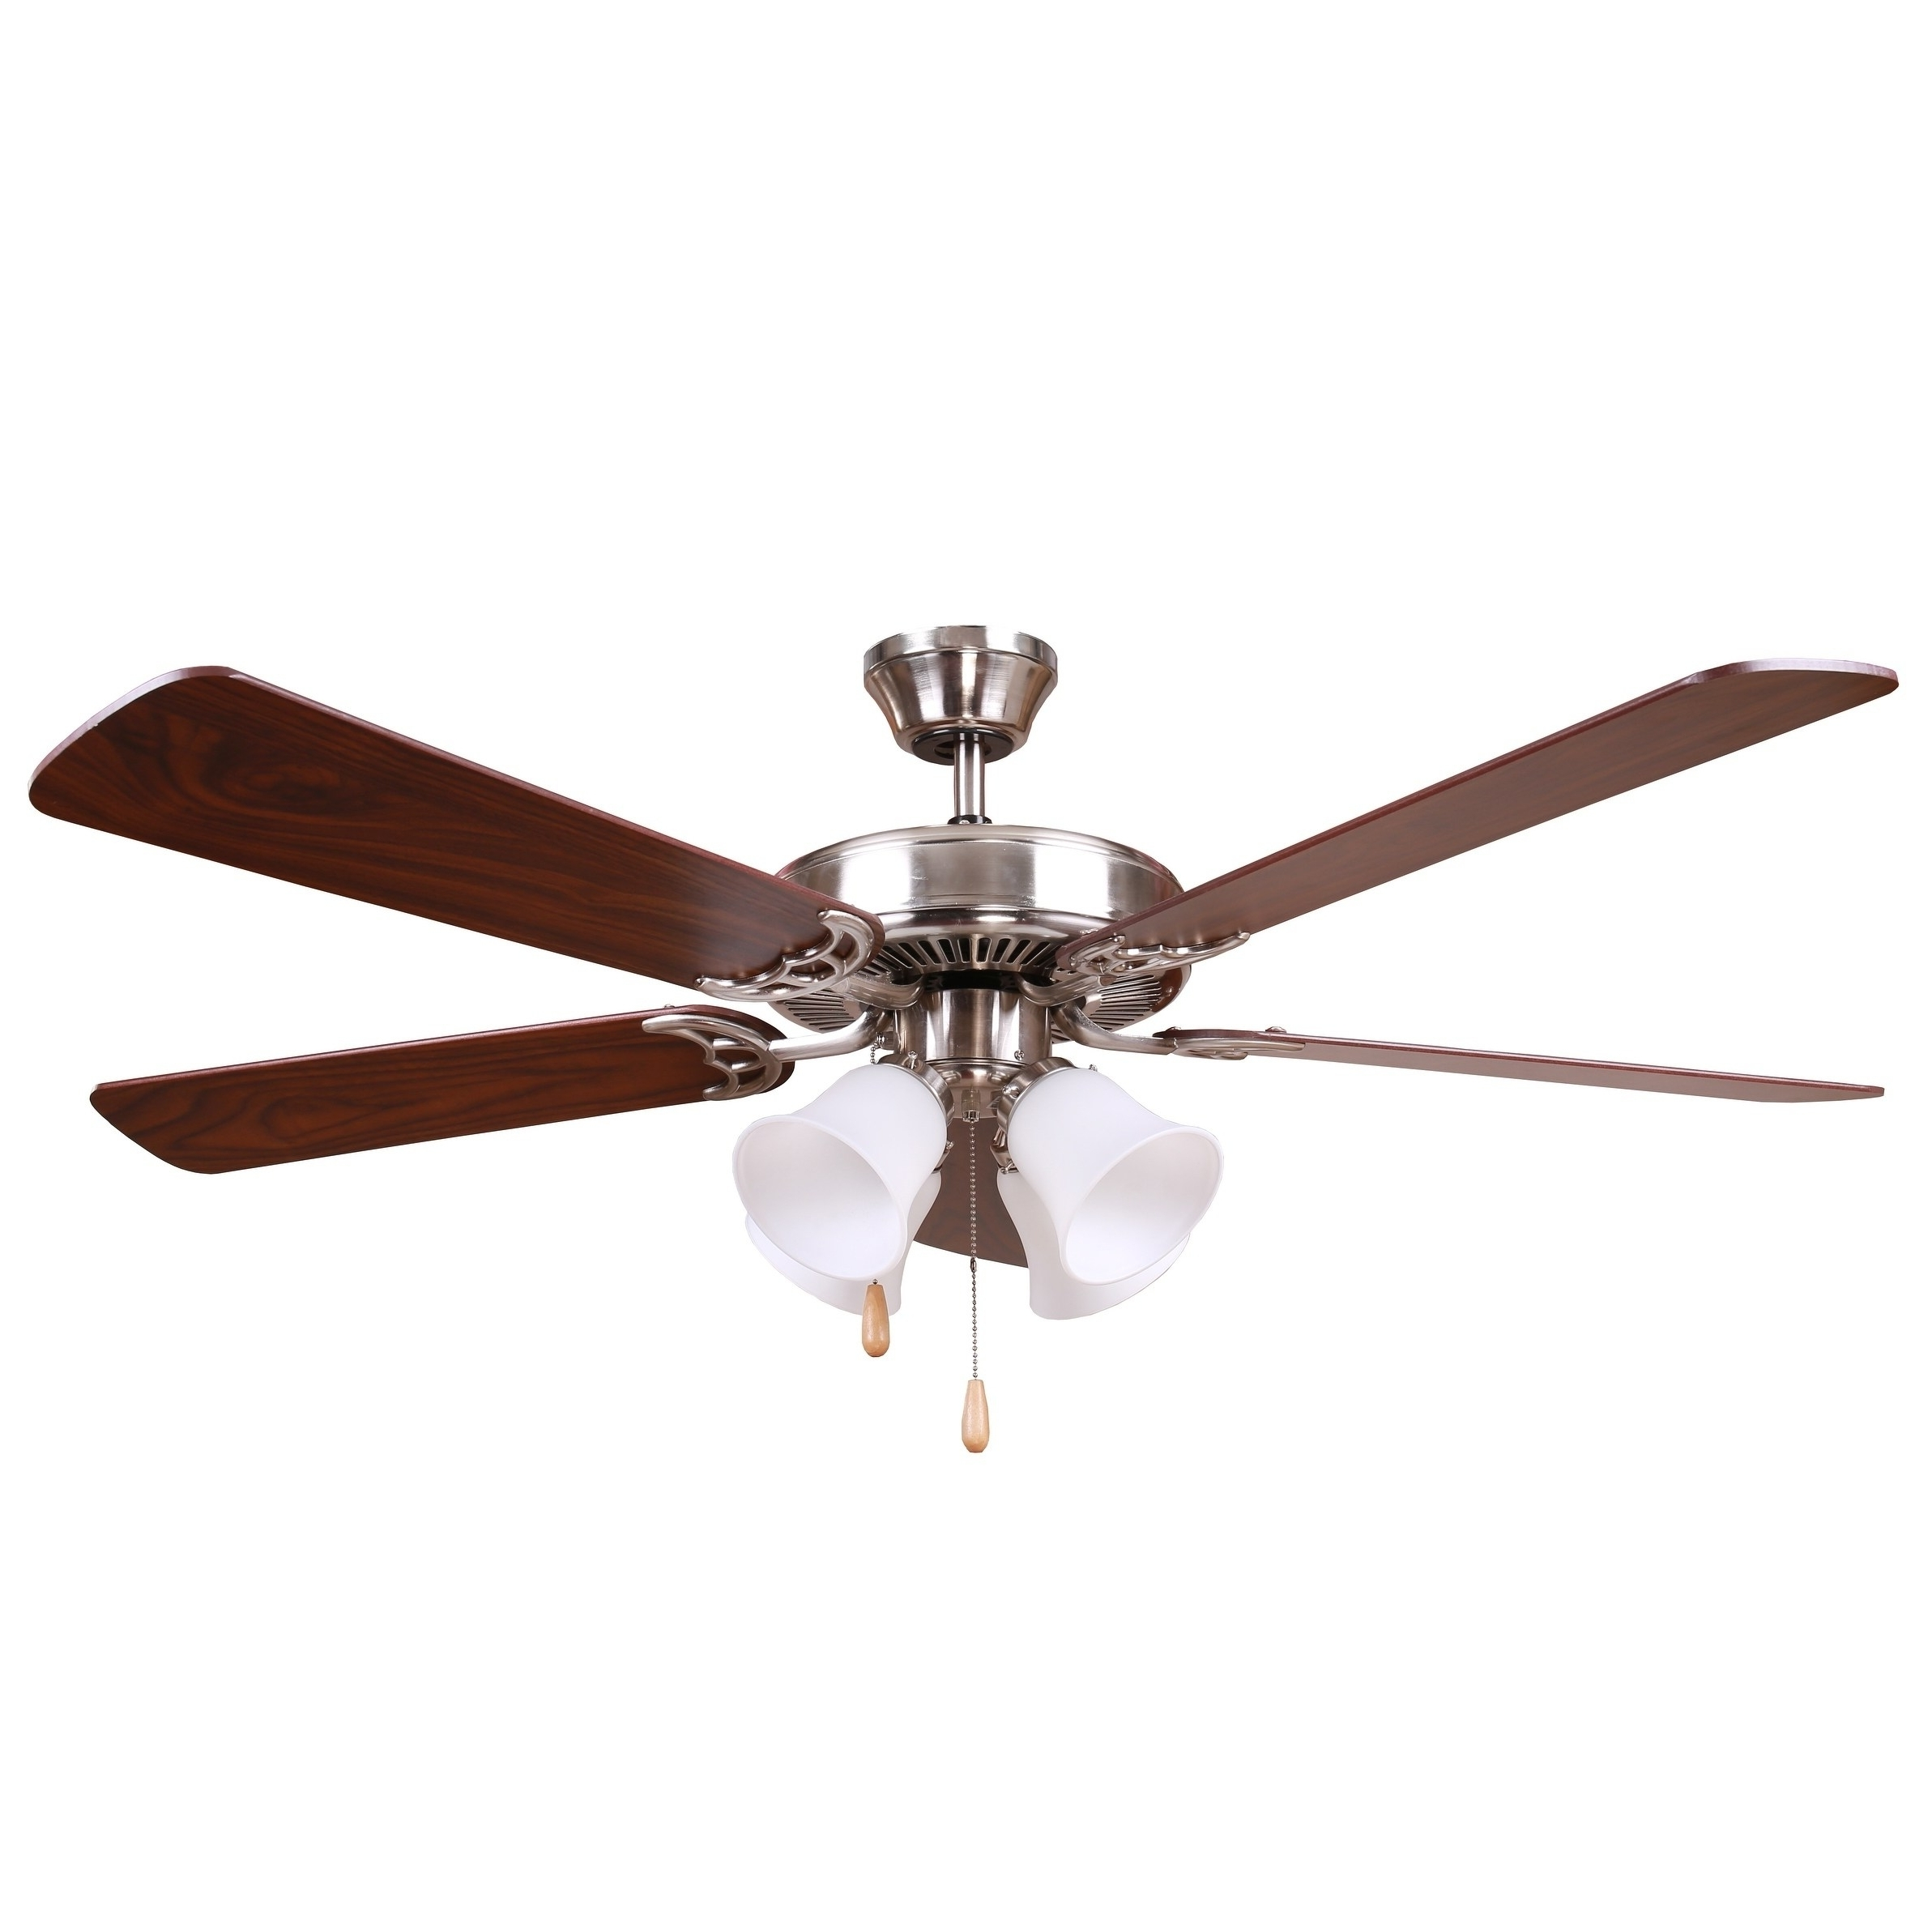 Preferred Outdoor Ceiling Fans With Removable Blades Regarding Shop Y Decor Bright Brushed Nickel Finish 52 Inch Ceiling Fan – Free (View 15 of 20)